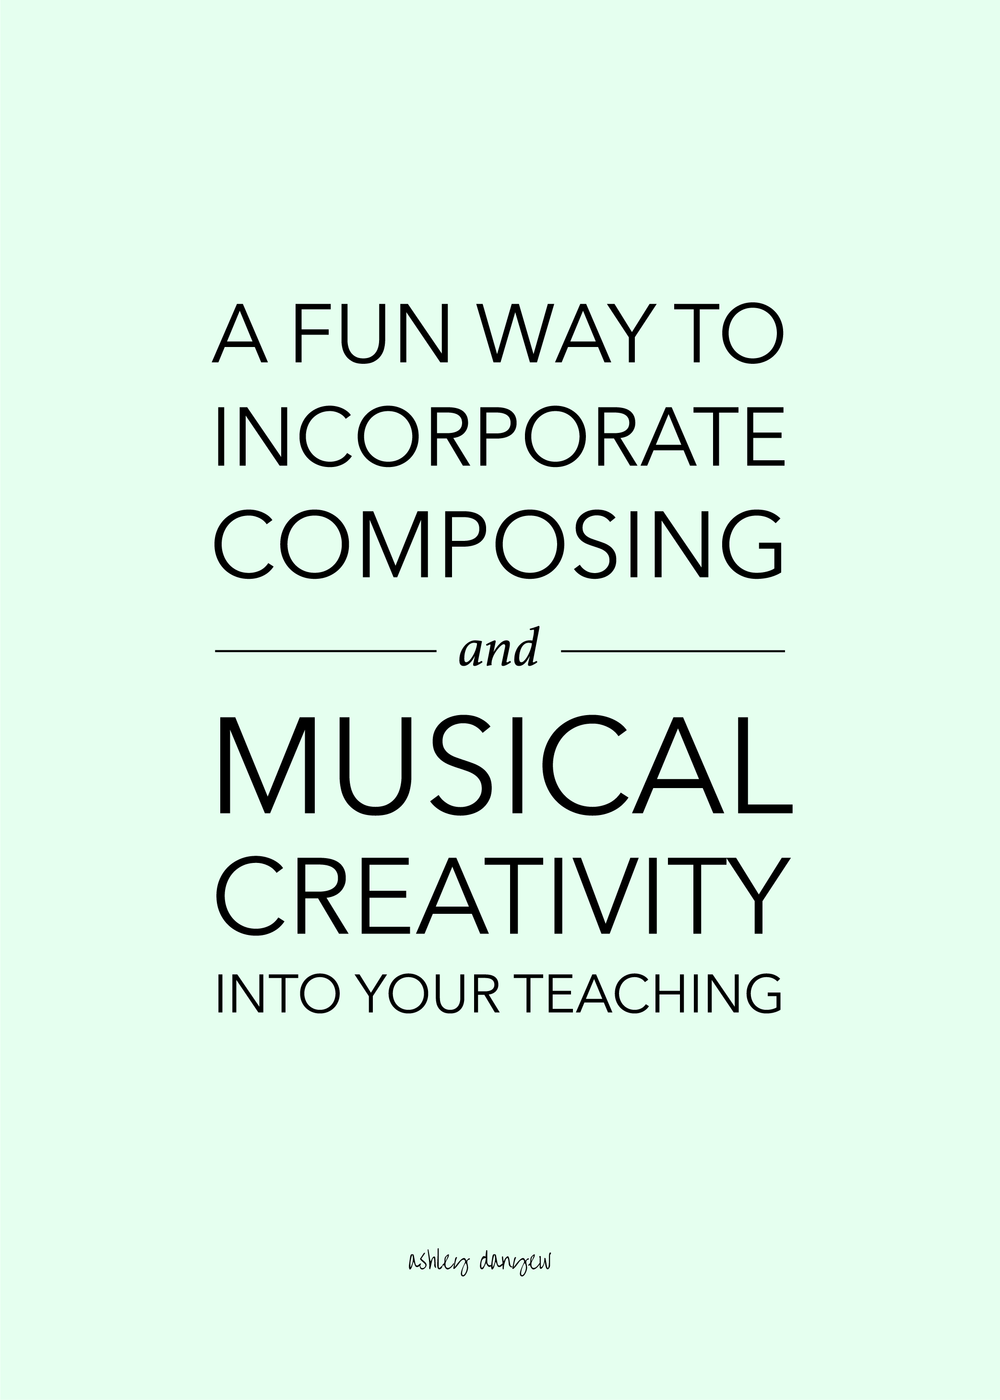 Copy of A Fun Way to Incorporate Composing and Musical Creativity Into Your Teaching